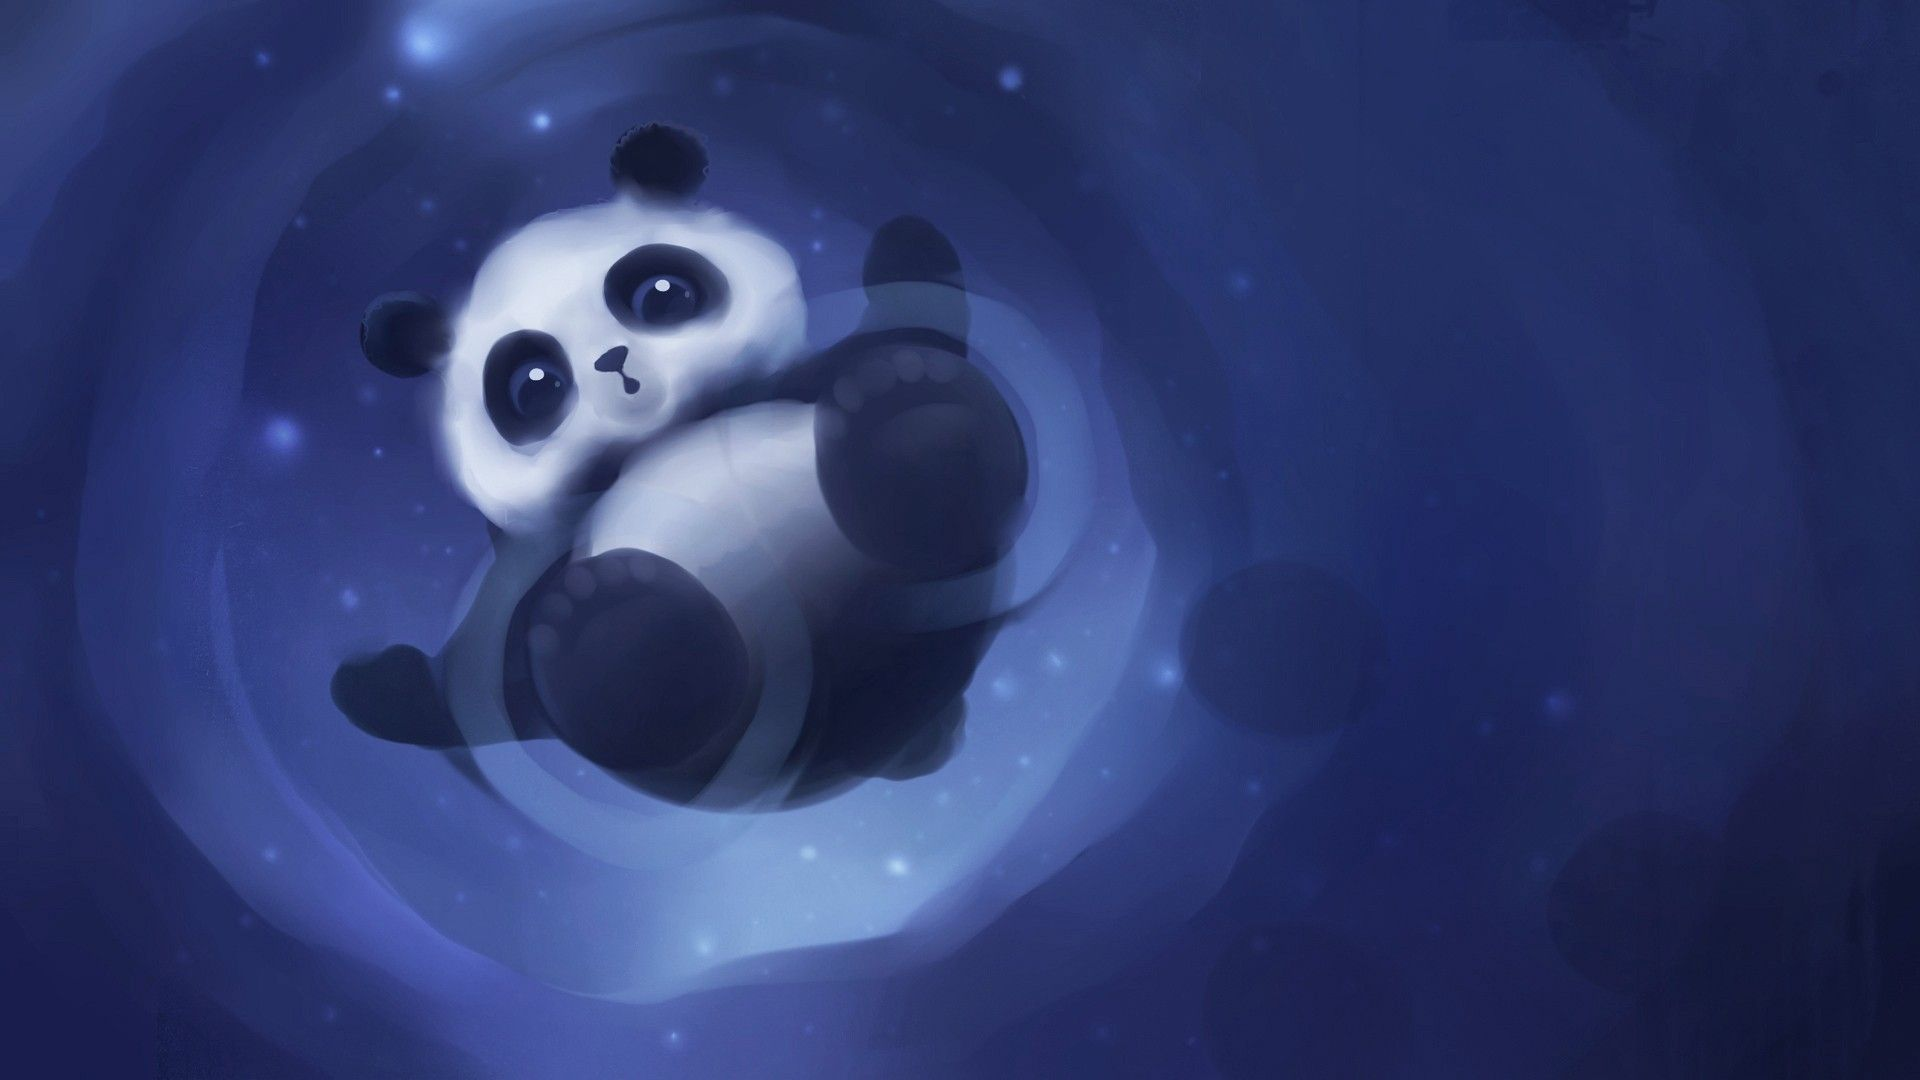 Wallpapers Of Pandas Posted By John Johnson